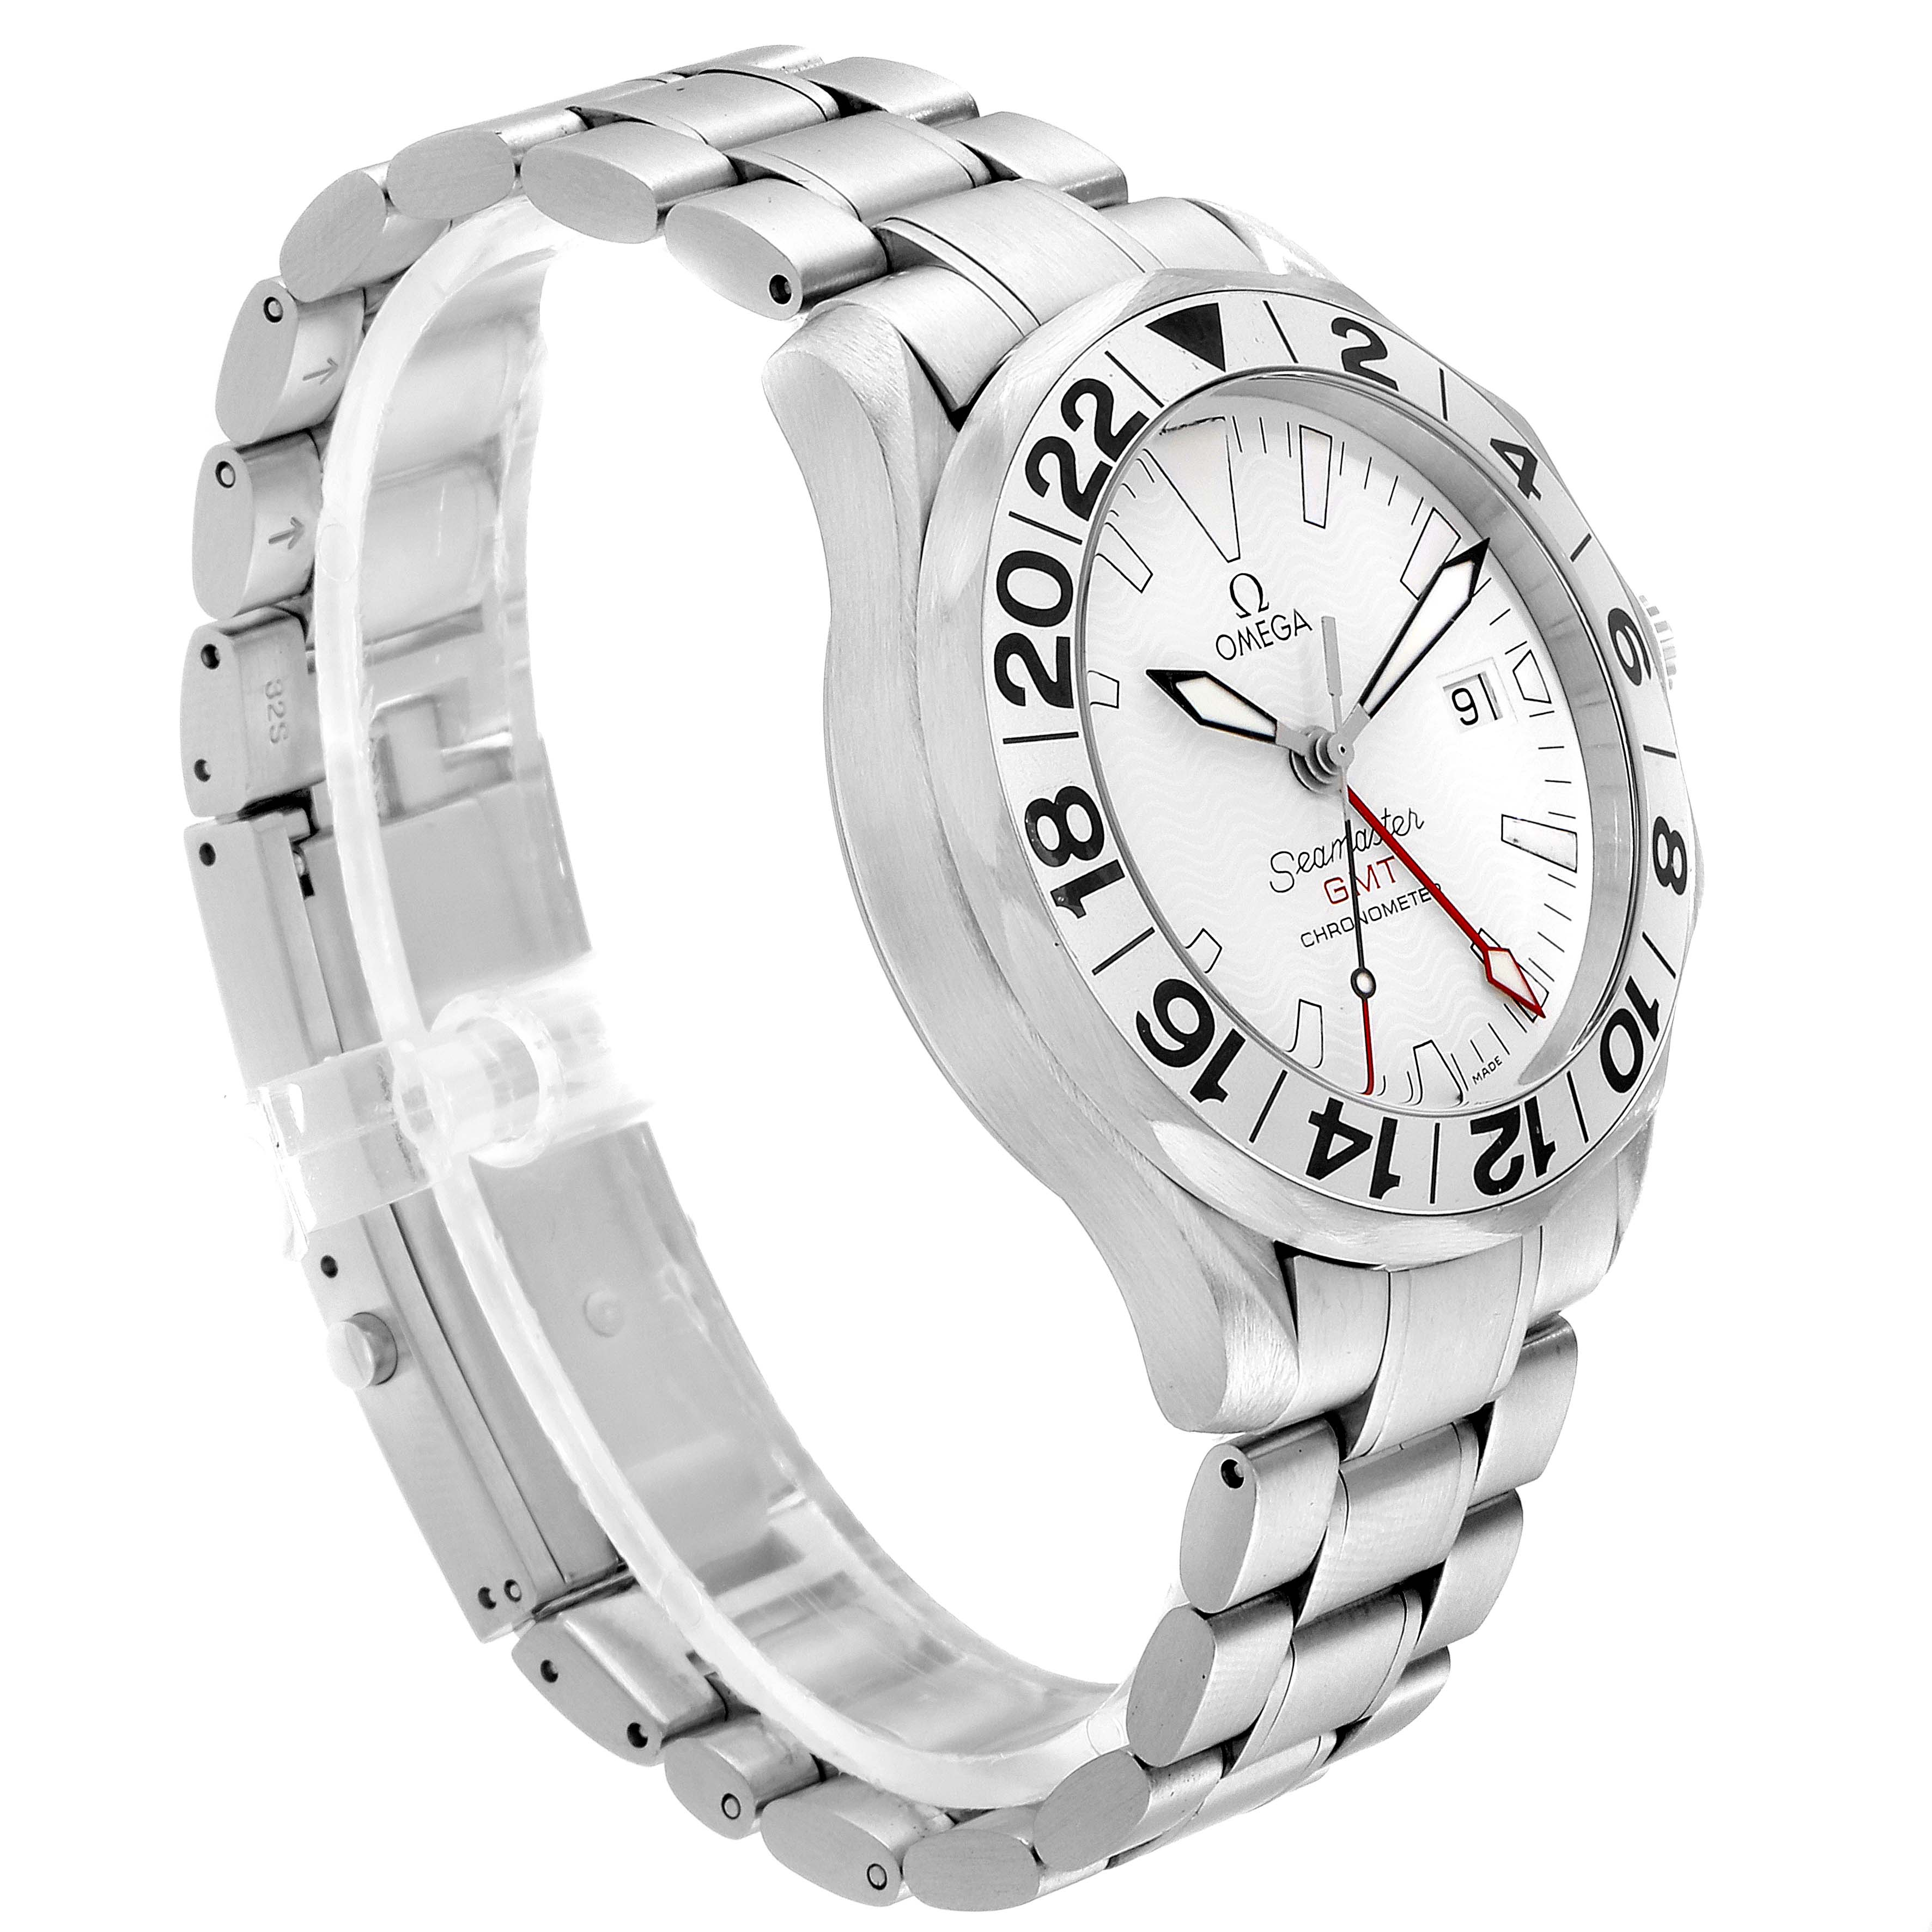 Omega Seamaster 300M GMT Great White Wave Dial Watch 2538.20.00 SwissWatchExpo